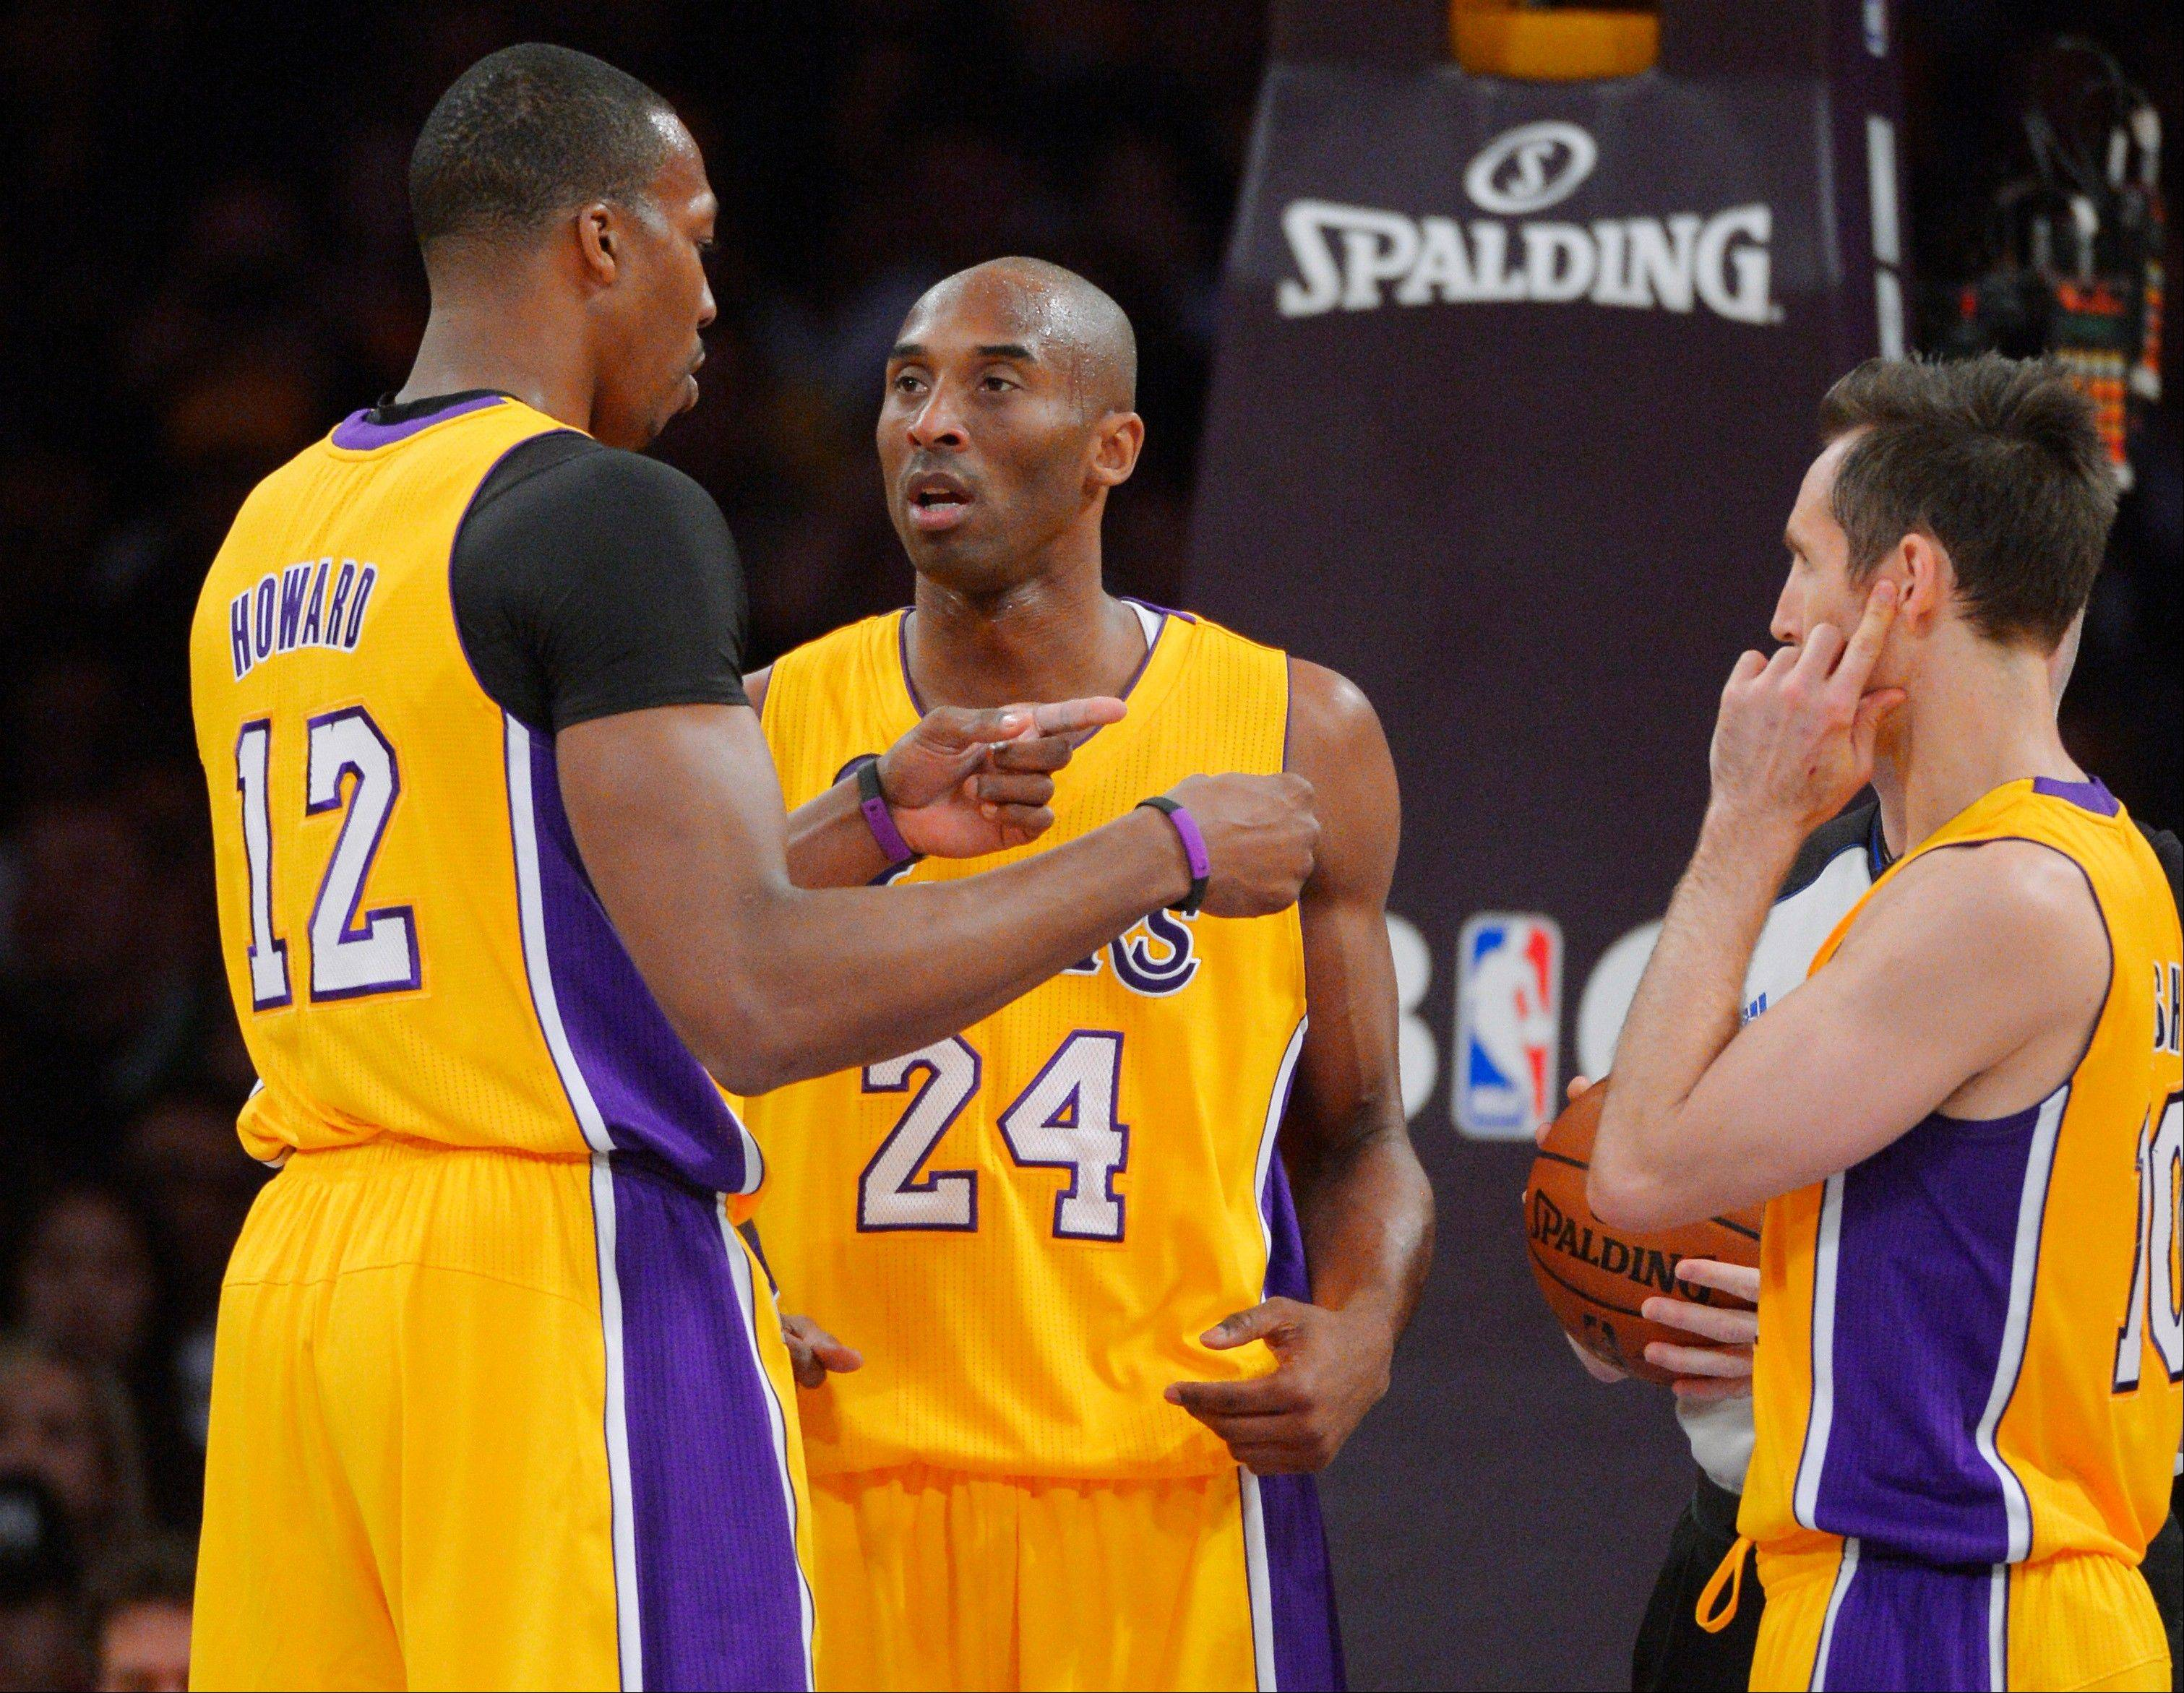 Will the Lakers survive the drama and struggles with center Dwight Howard and guard Kobe Bryant?